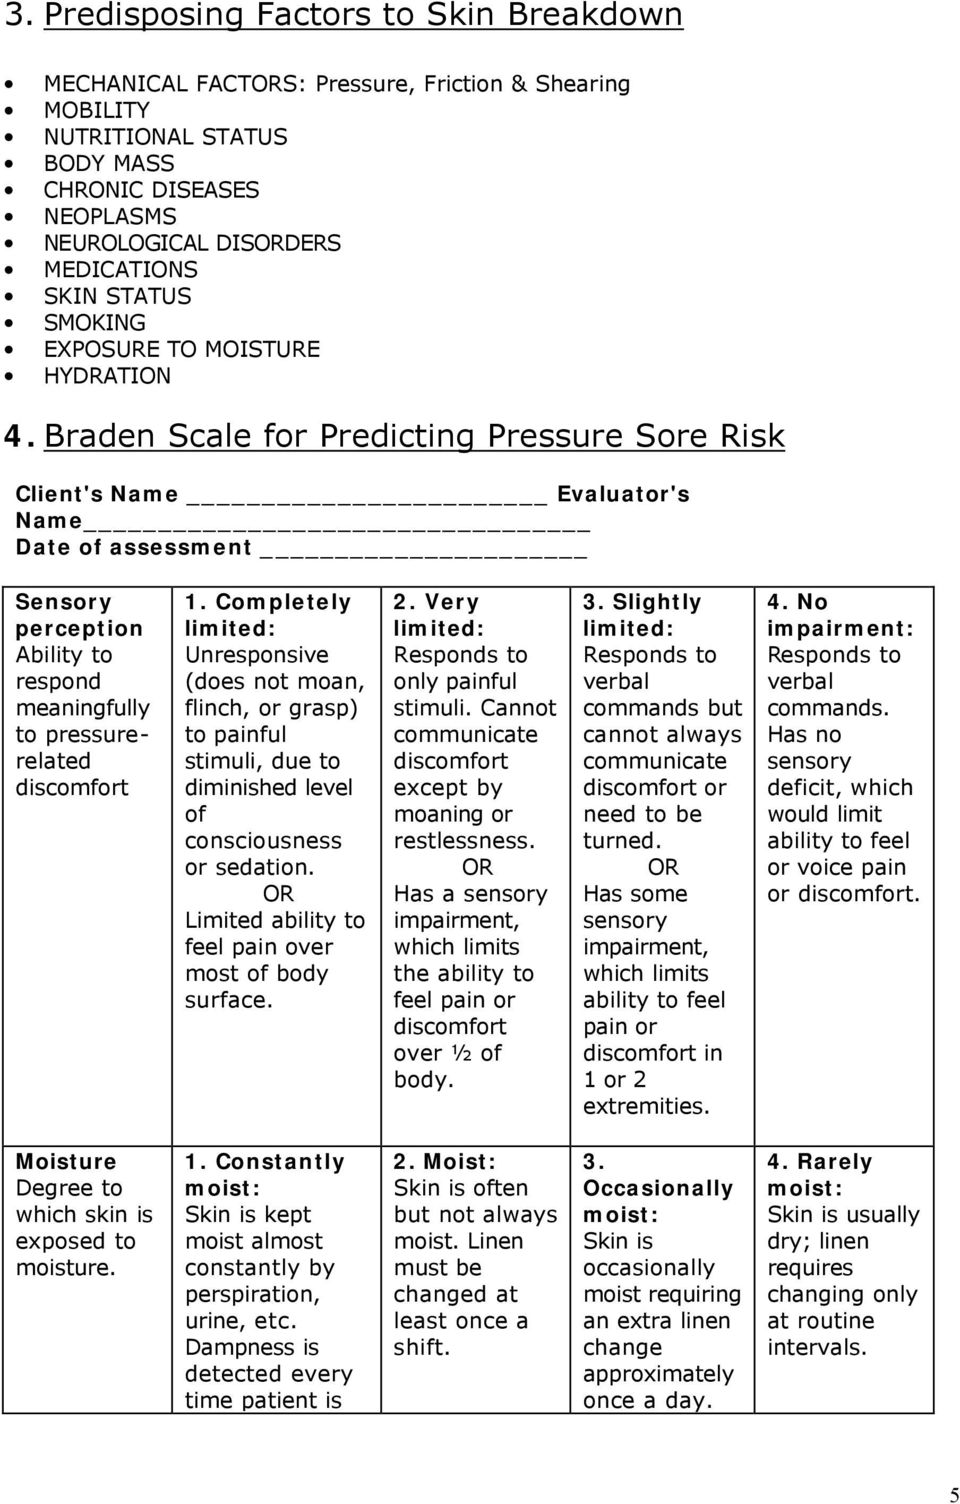 Braden Scale for Predicting Pressure Sore Risk Client's Name Evaluator's Name Date of assessment Sensory perception Ability to respond meaningfully to pressurerelated discomfort 1.